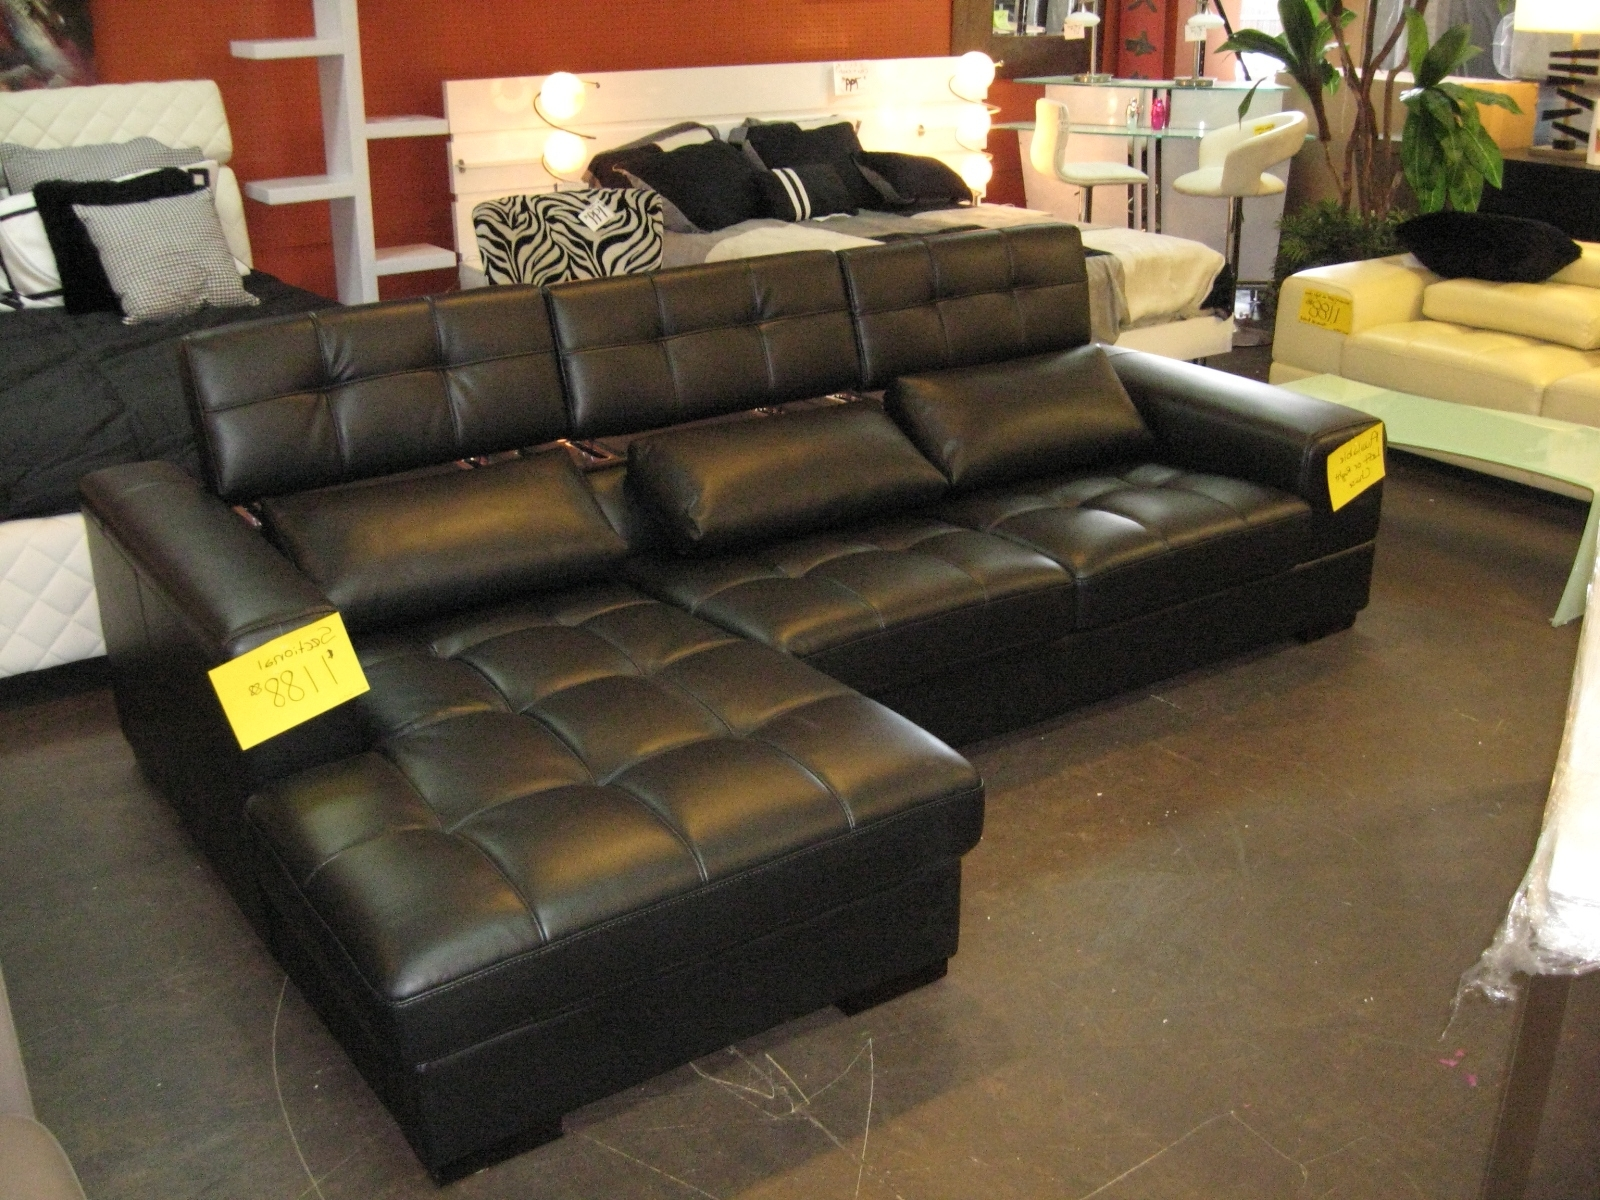 Living Room Design: Awesome Black Leather Sectional For Elegant In Well Liked Leather Modular Sectional Sofas (View 14 of 15)